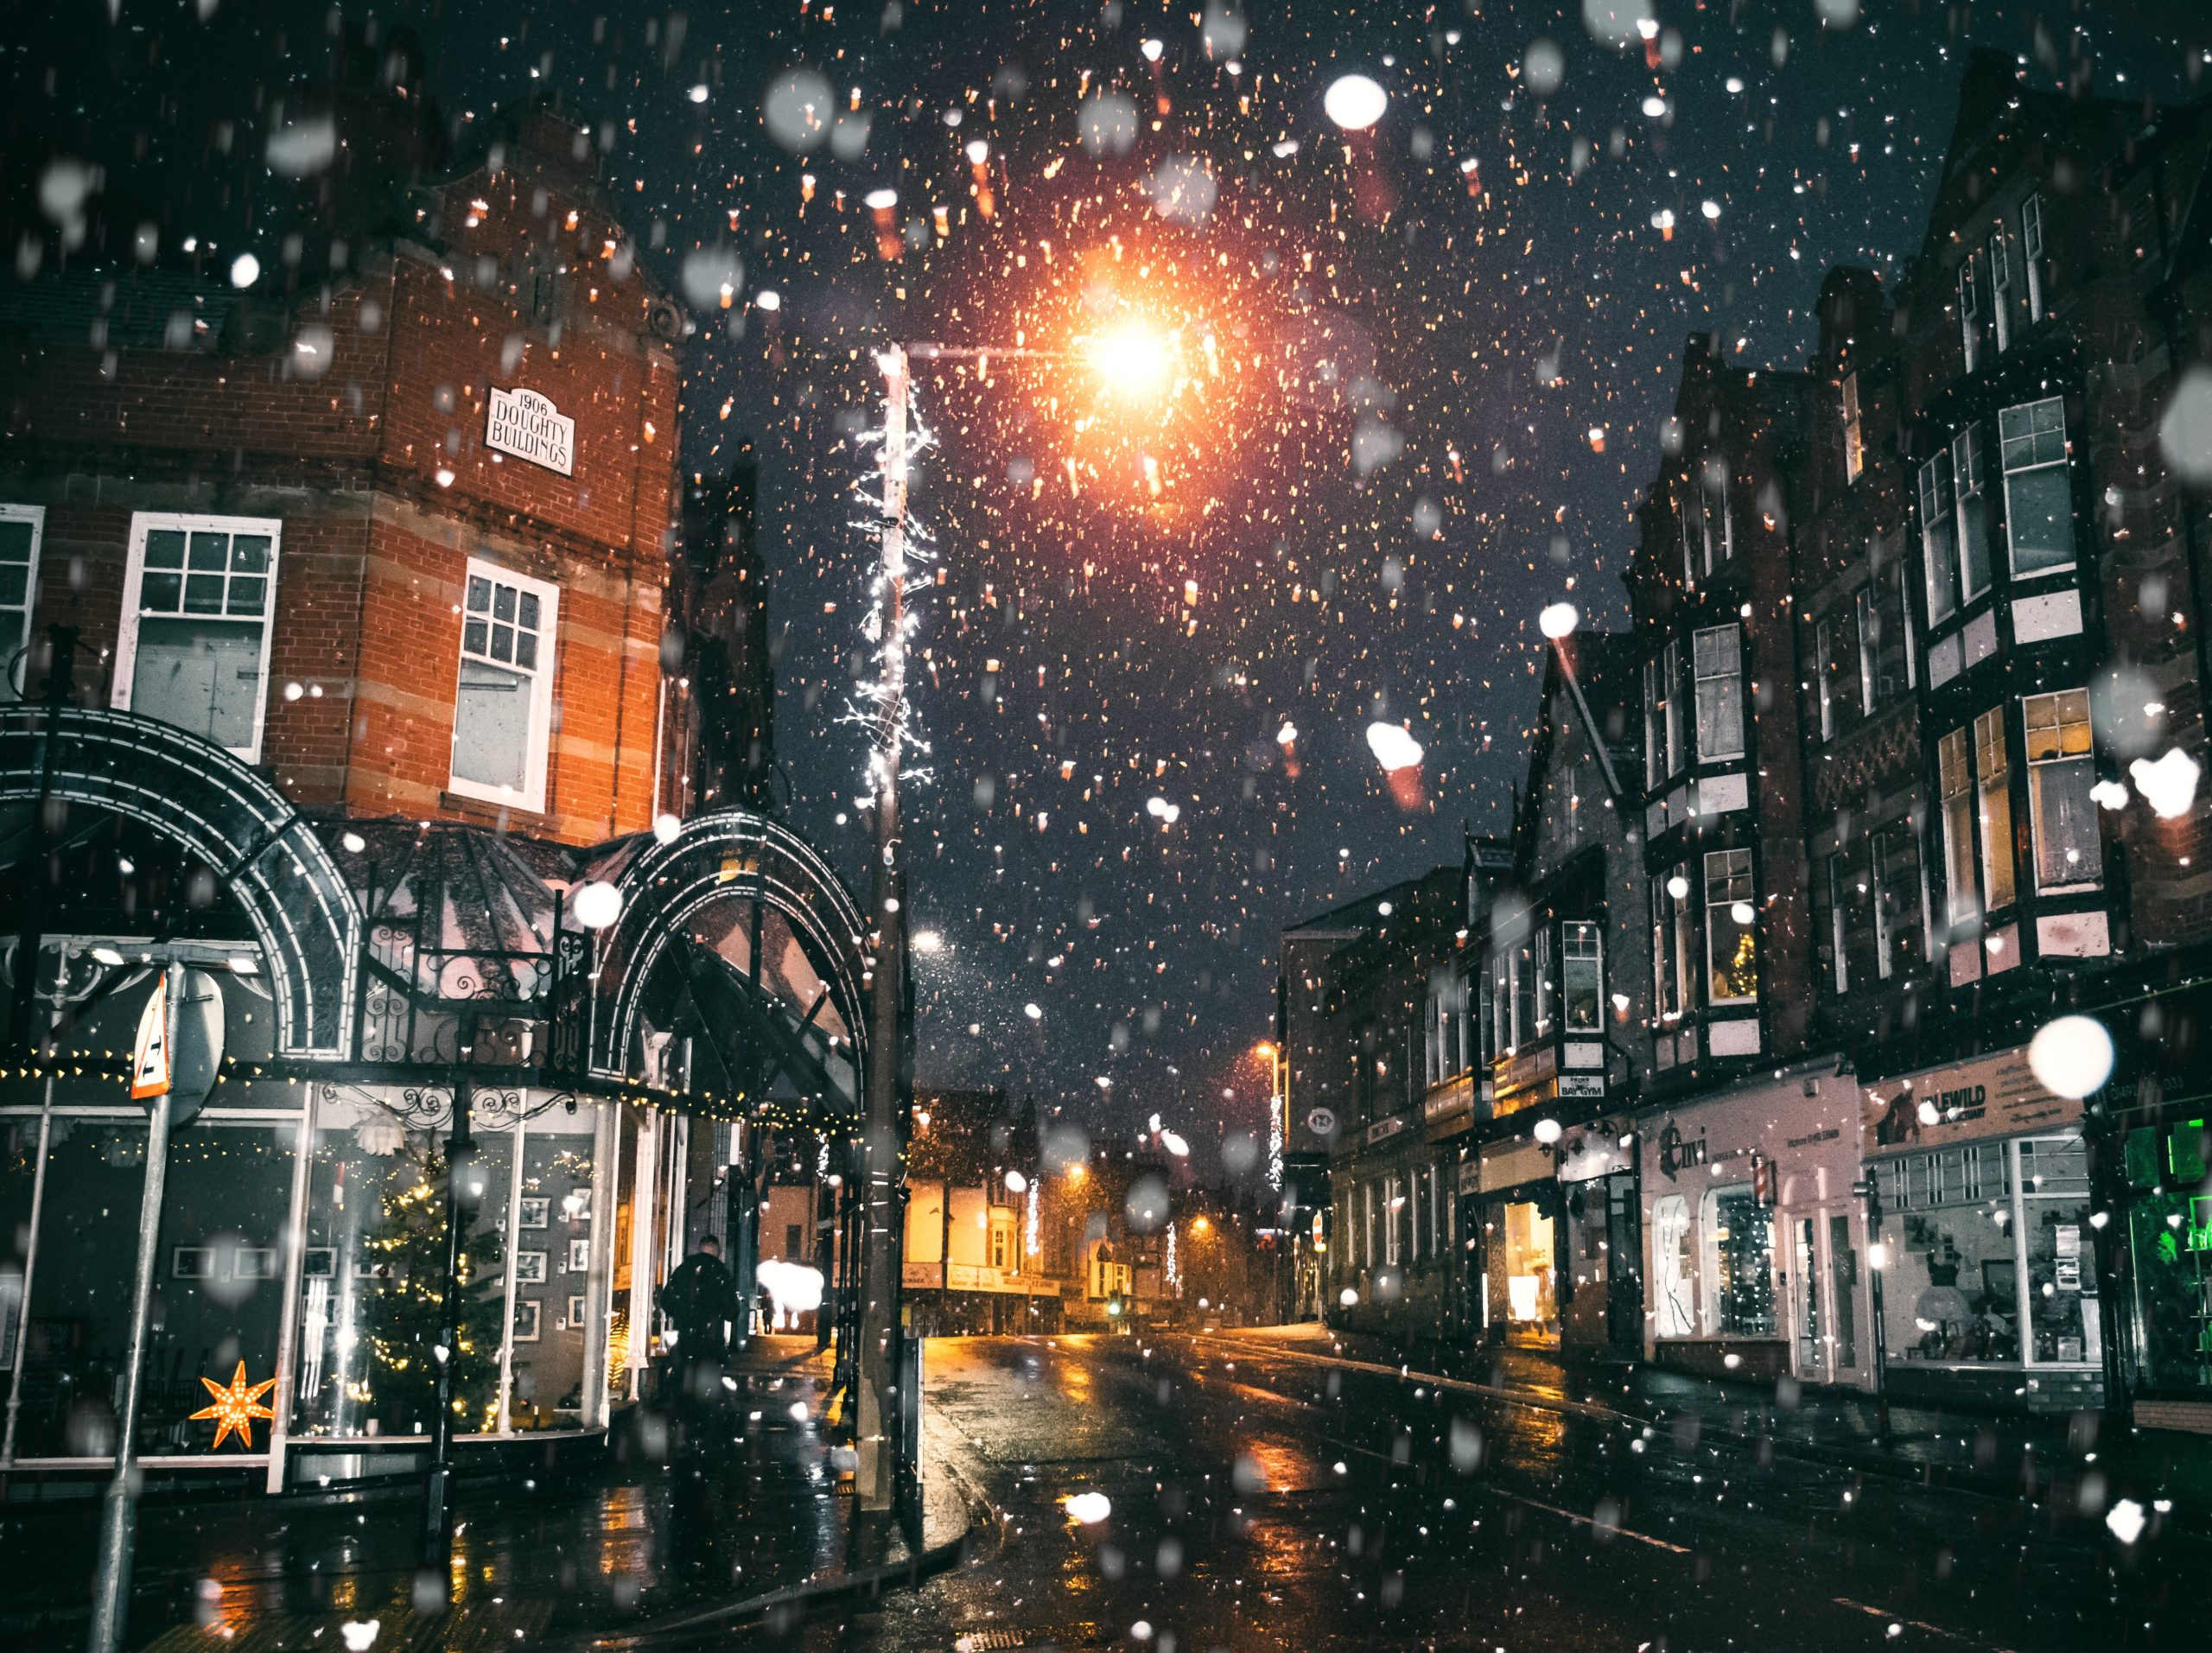 rain-of-snow-in-town-painting-730256